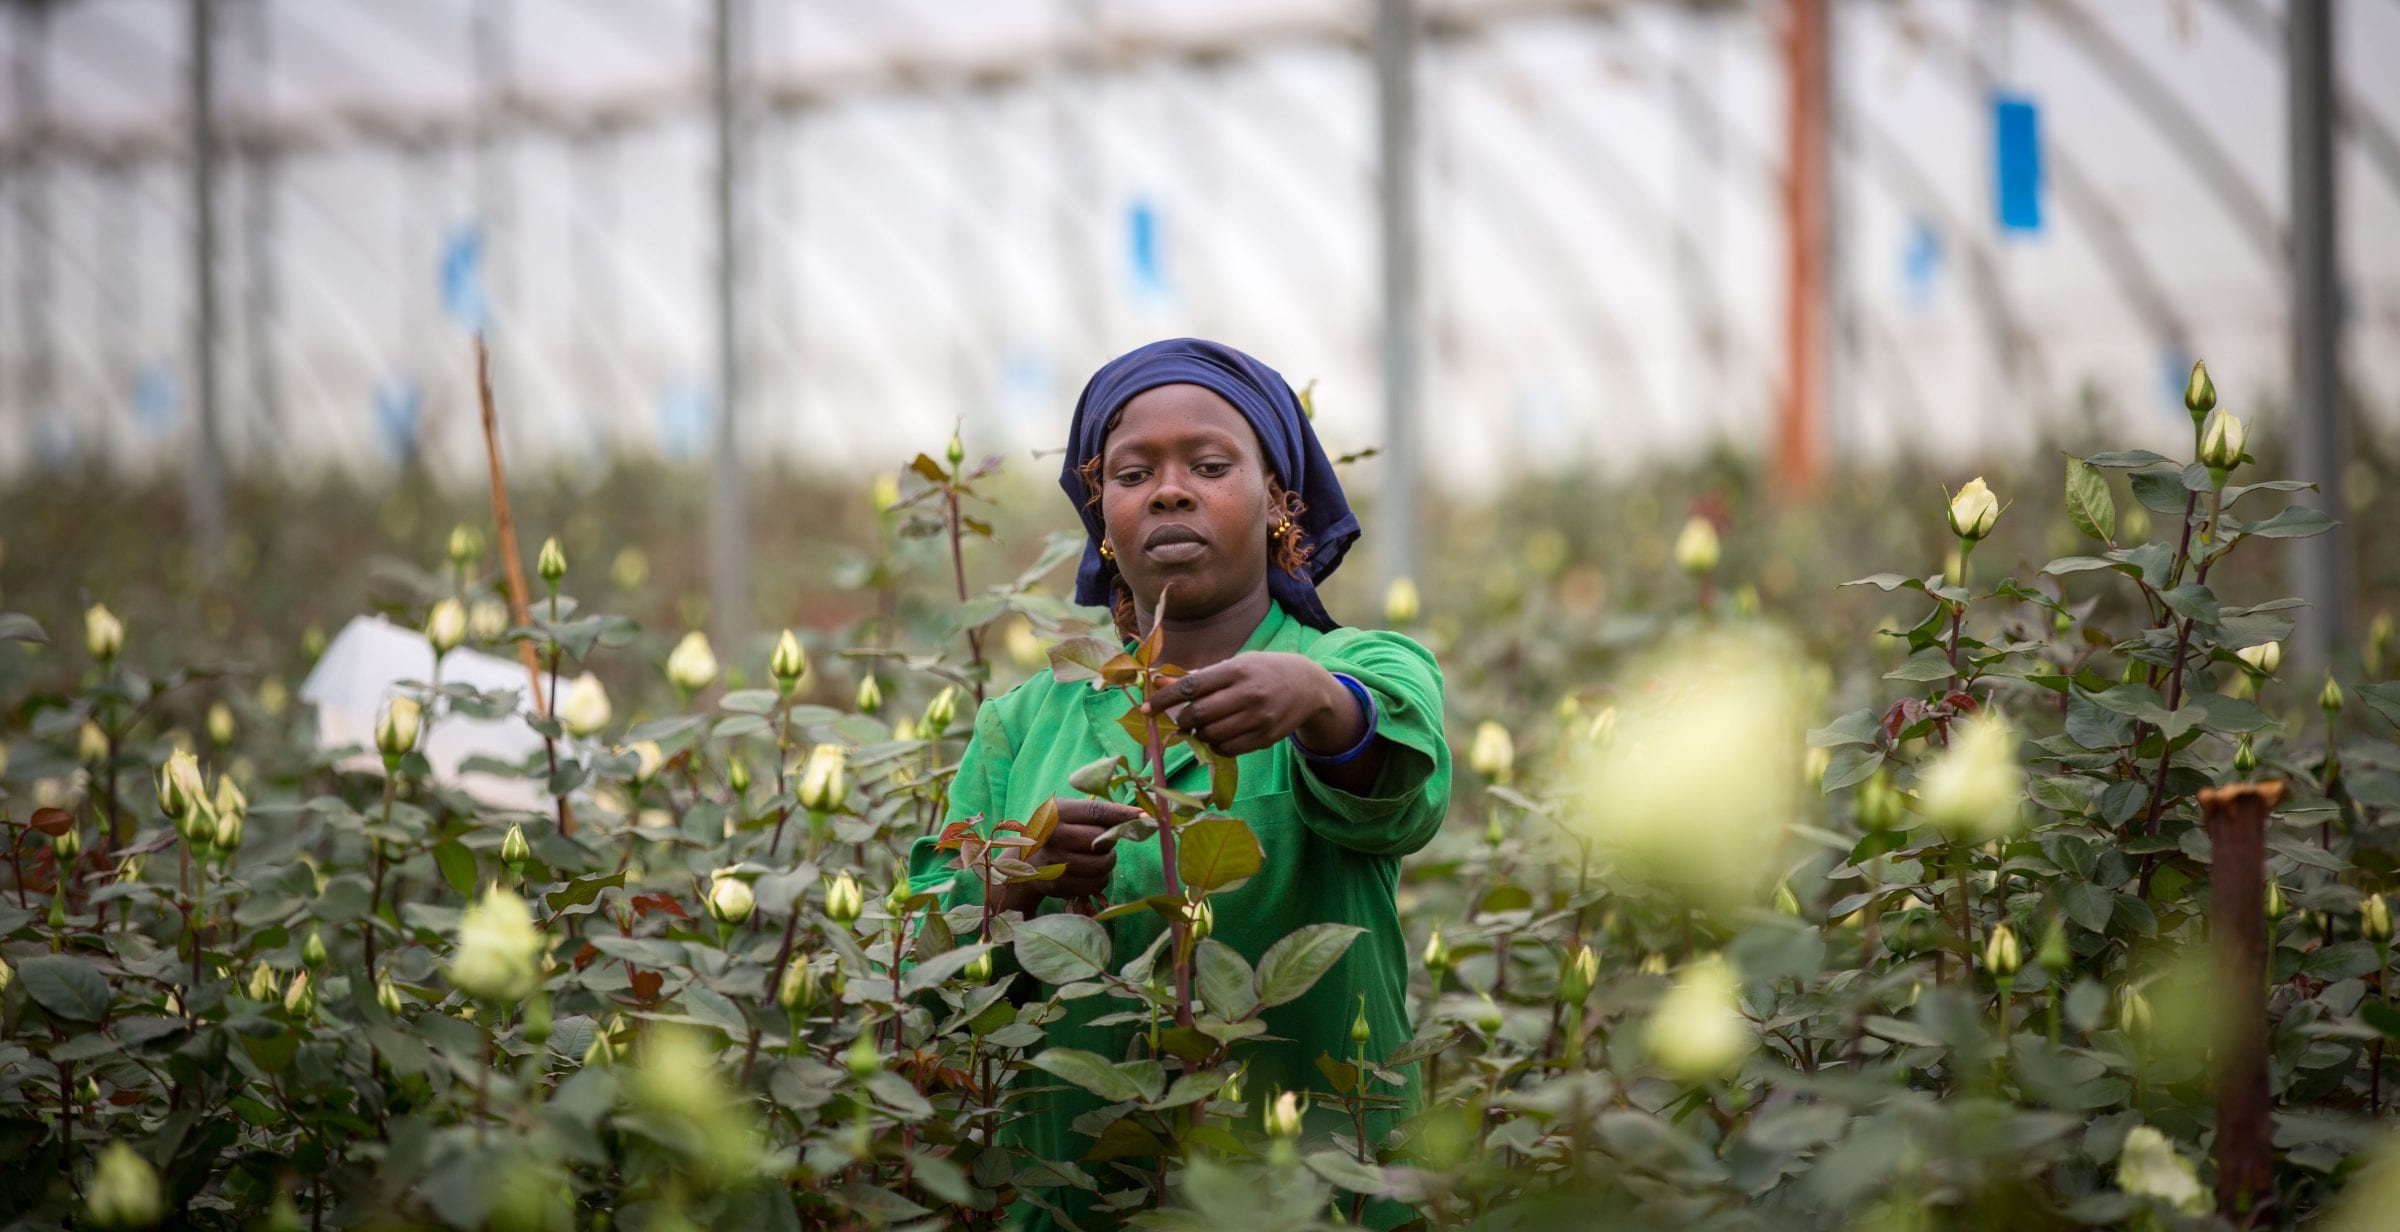 KENYA, Timau: In a photograph taken by the Kenyan Ministry of East African Affairs, Commerce and Tourism (MEAACT) 26 July 2015, a farm worker tends to roses growing inside a greenhouse at Kisima Farm in Timau, Meru County, central Kenya, approx. 250km north of the capital Nairobi. MANDATORY CREDIT: MEAACT PHOTO / STUART PRICE.